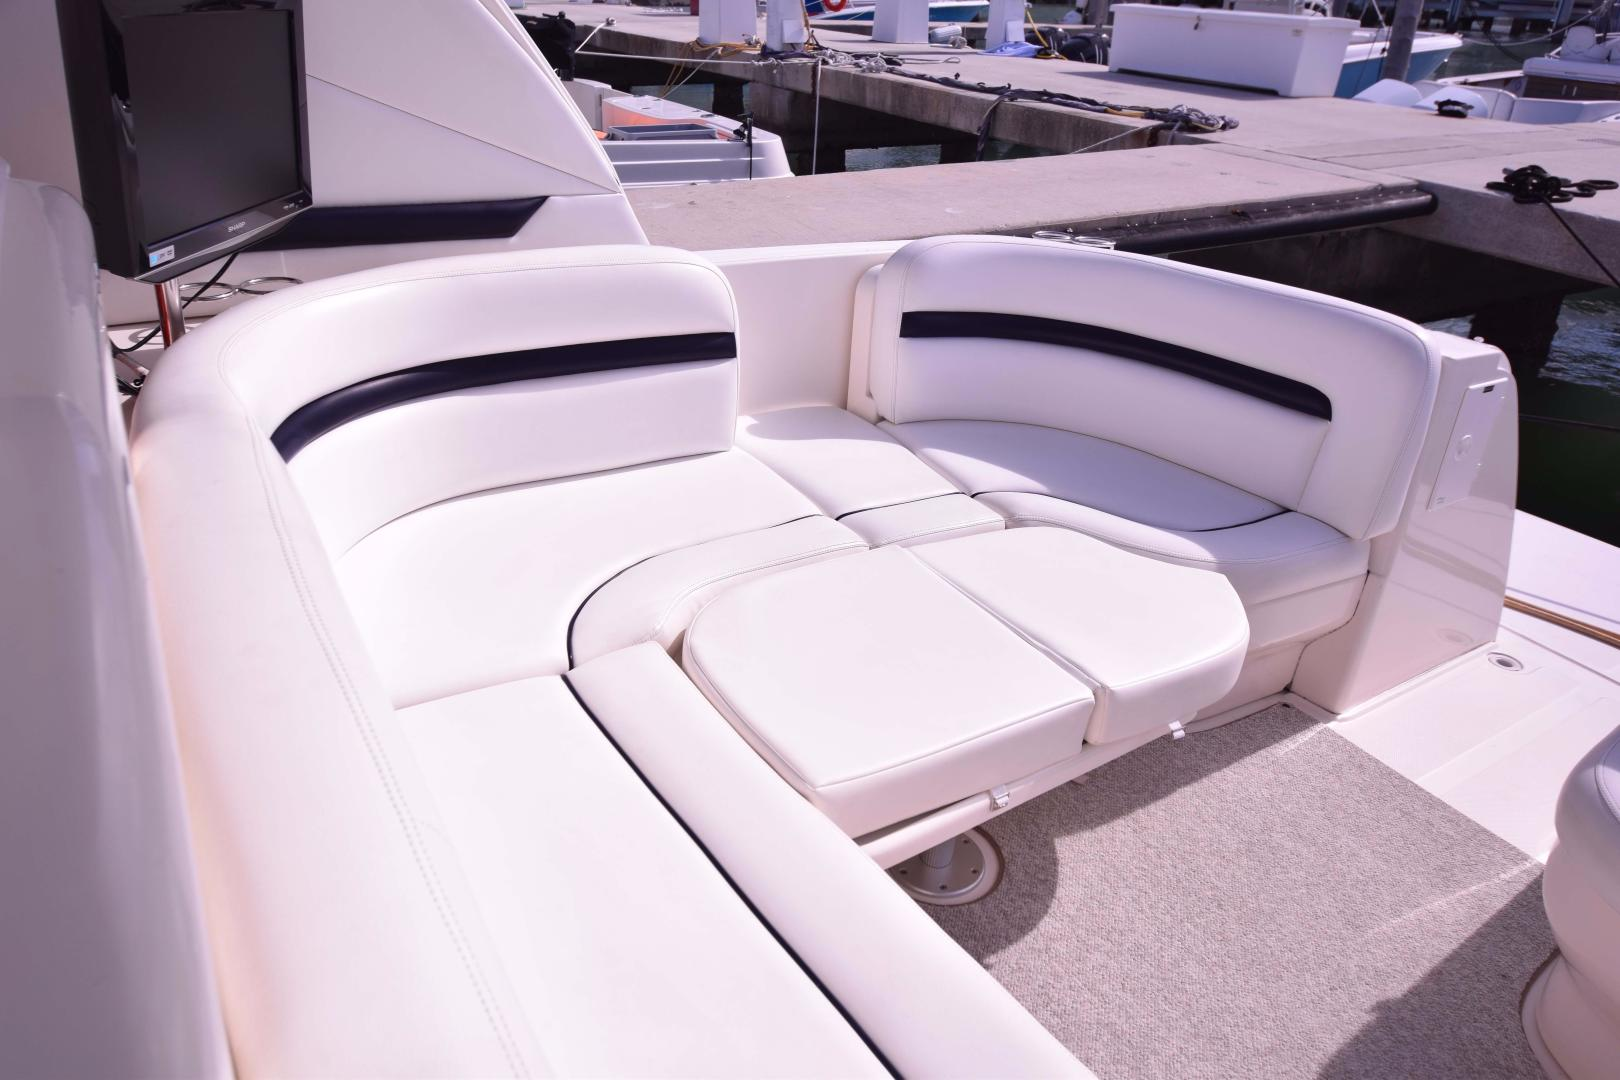 Sea Ray-Sundancer 2008-Heaven Sent Miami Beach-Florida-United States-Aft Deck Seating with Insert-369175 | Thumbnail